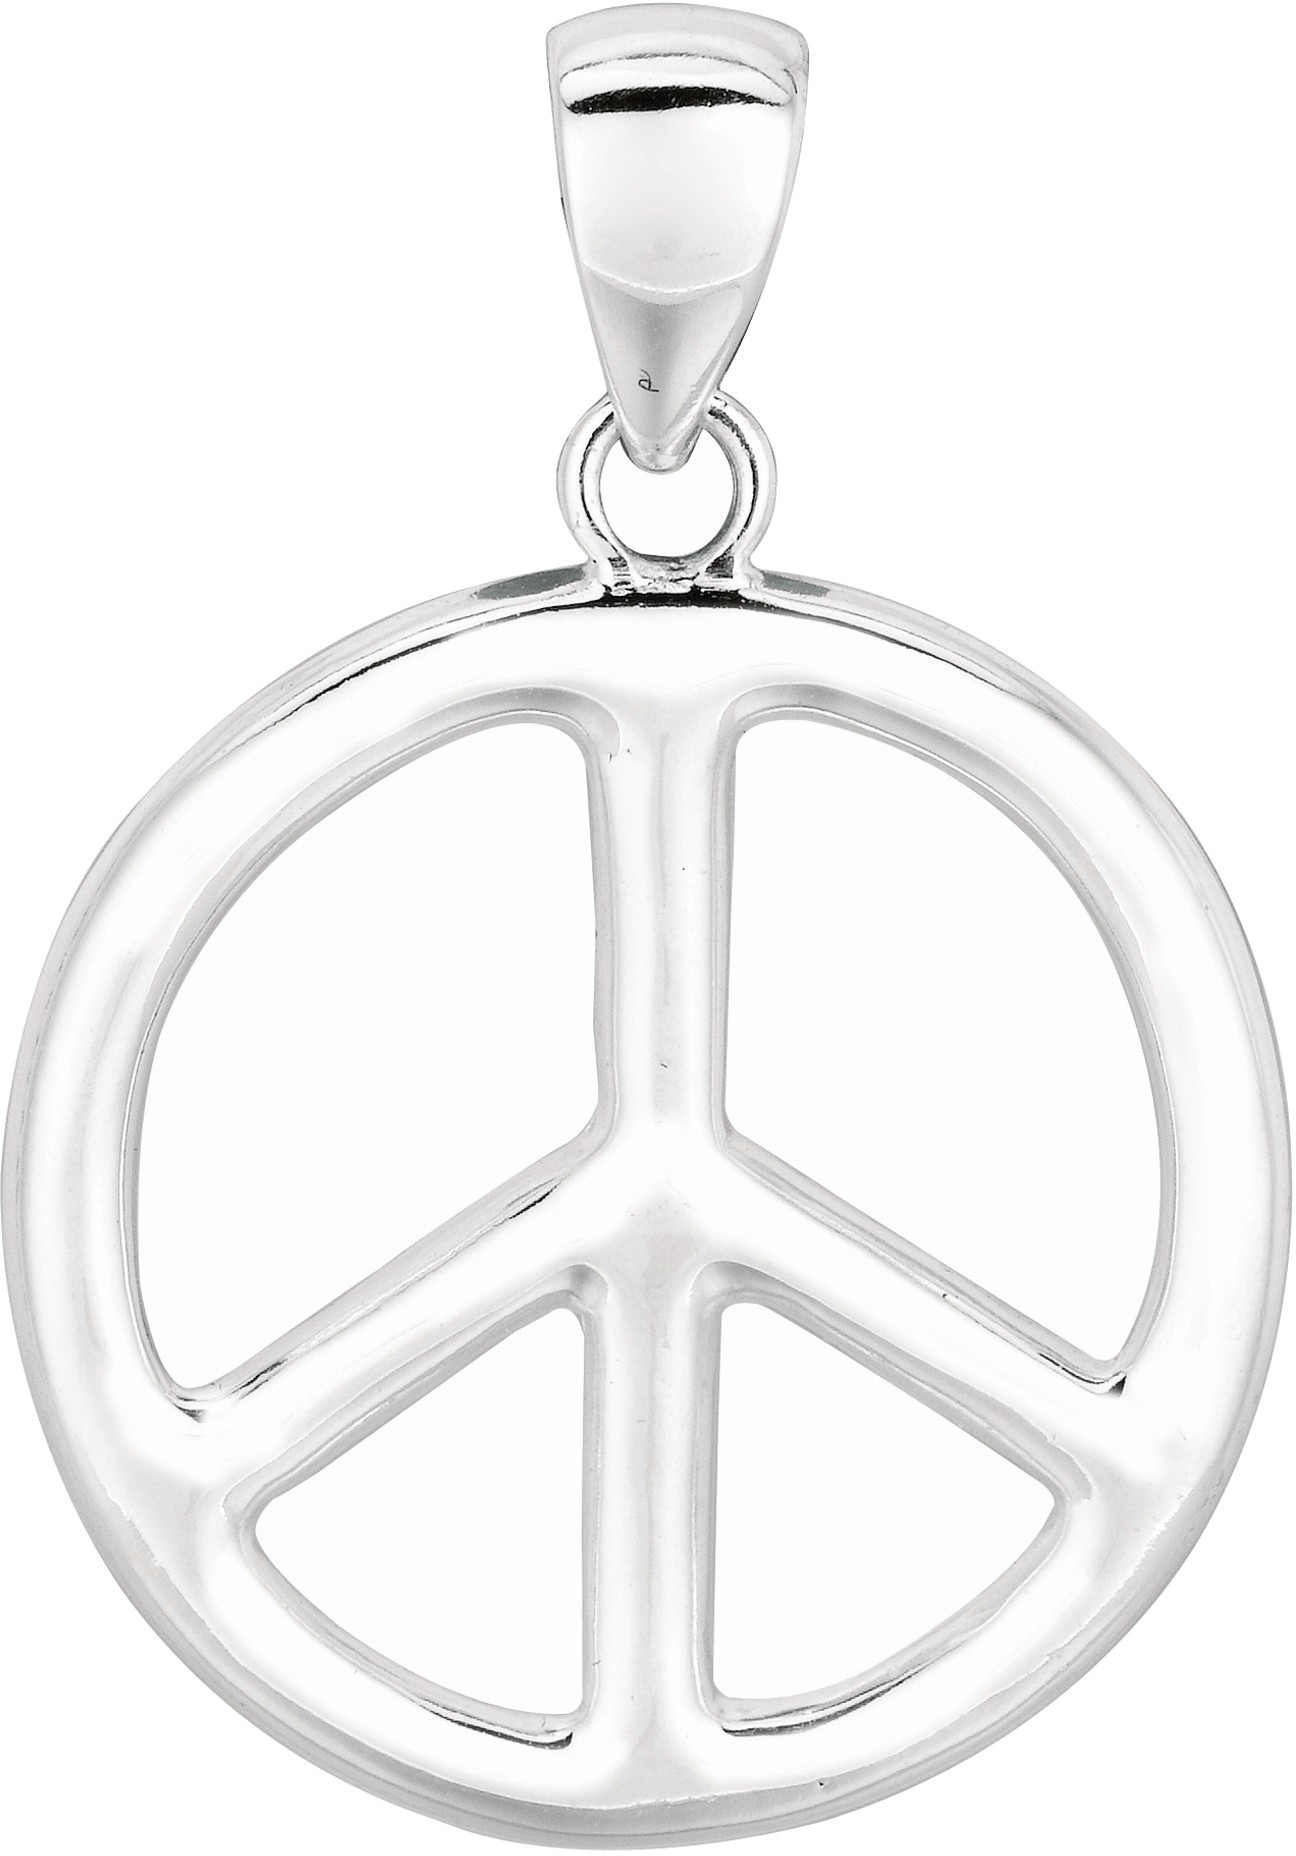 "Silver Rhodium Plated 22mm (7/8"") Shiny Peace Sign Pendant"